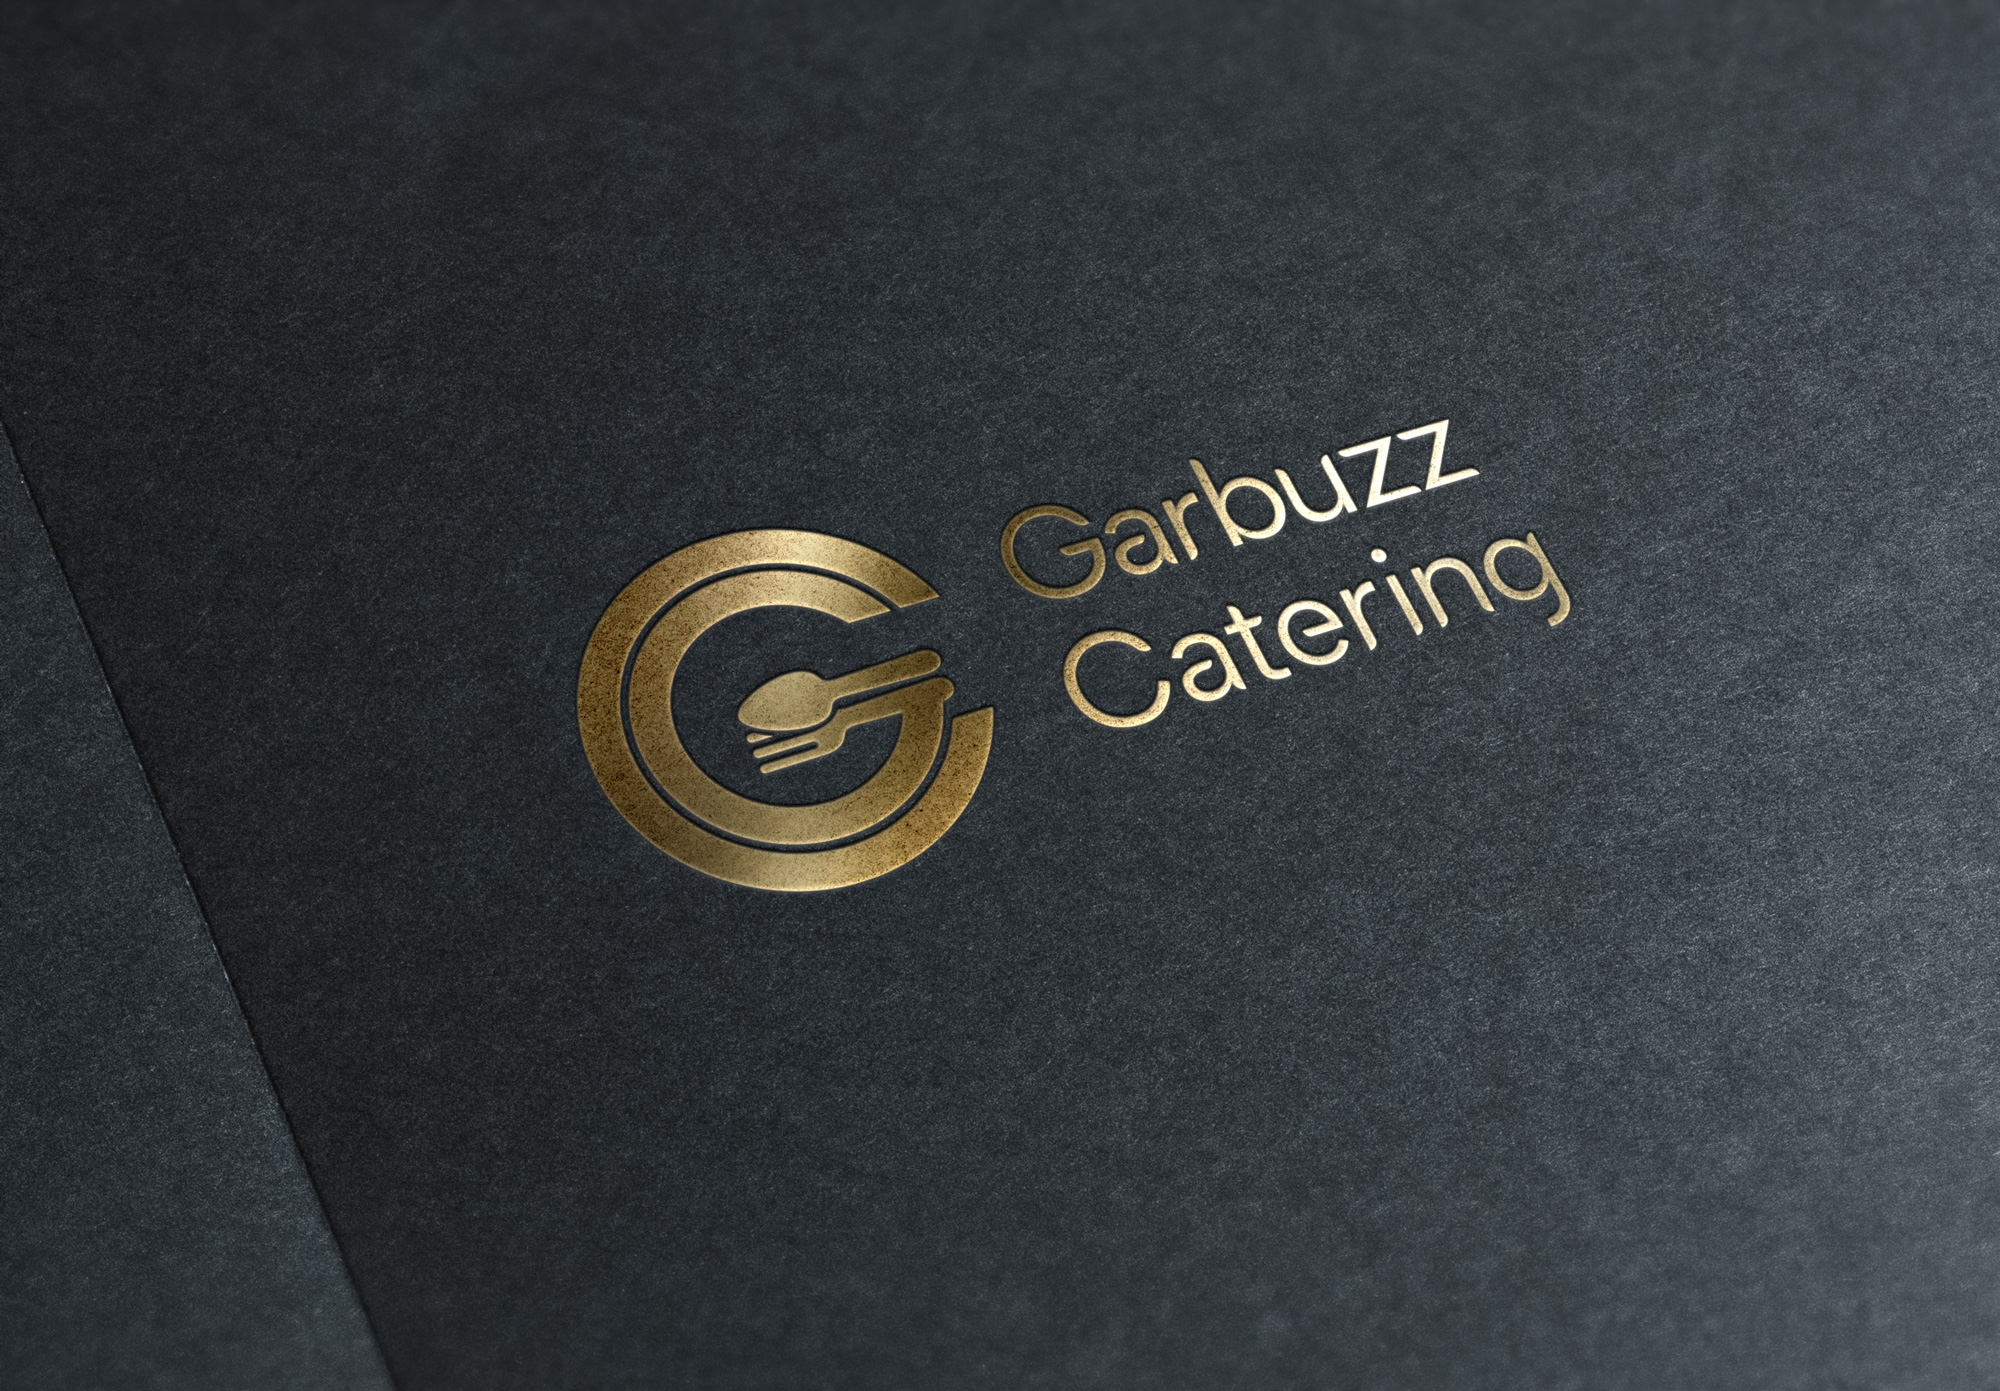 Логотип Garbuzz Catering3